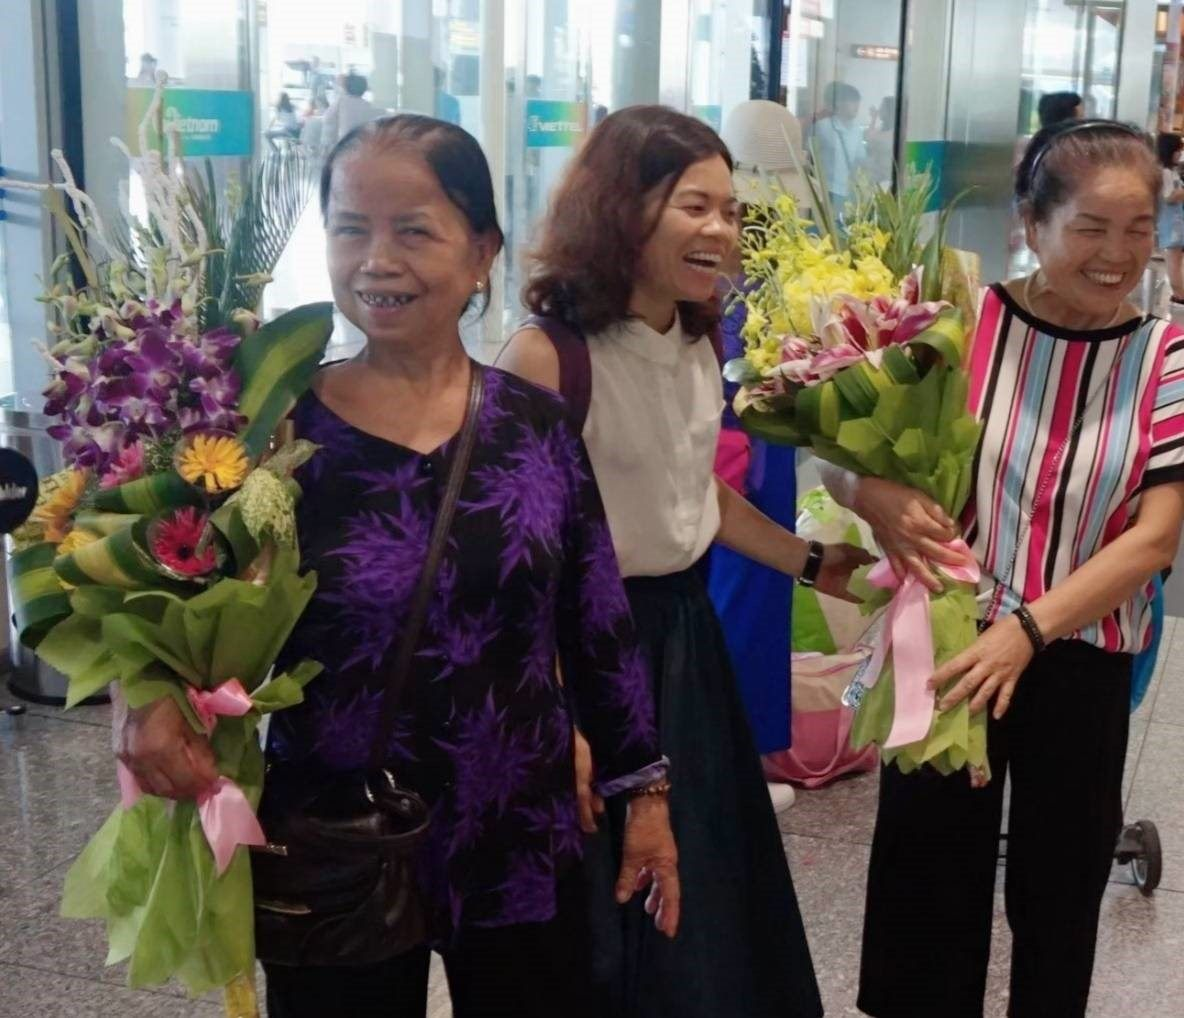 Vietnamese women smiling after receiving flowers for the Vietnamese Women's Day